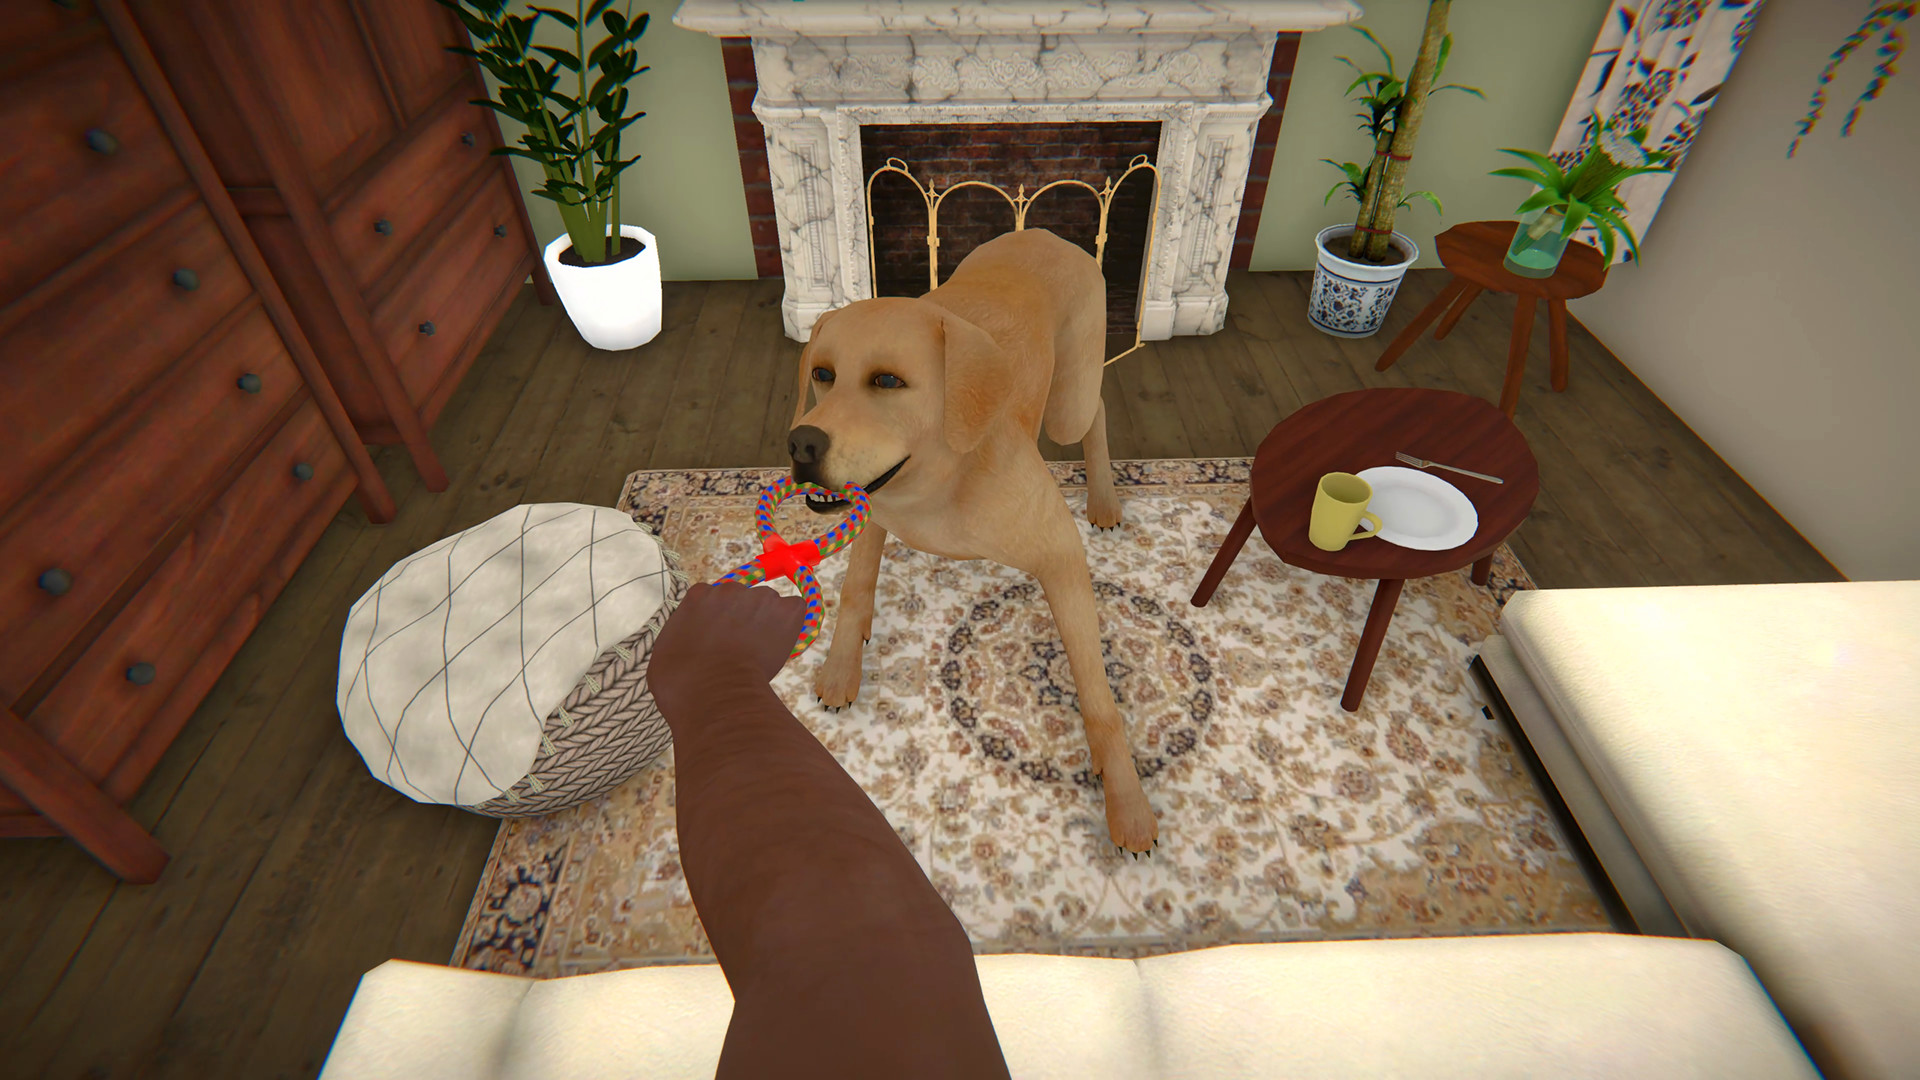 House Flipper is getting pets, because why not